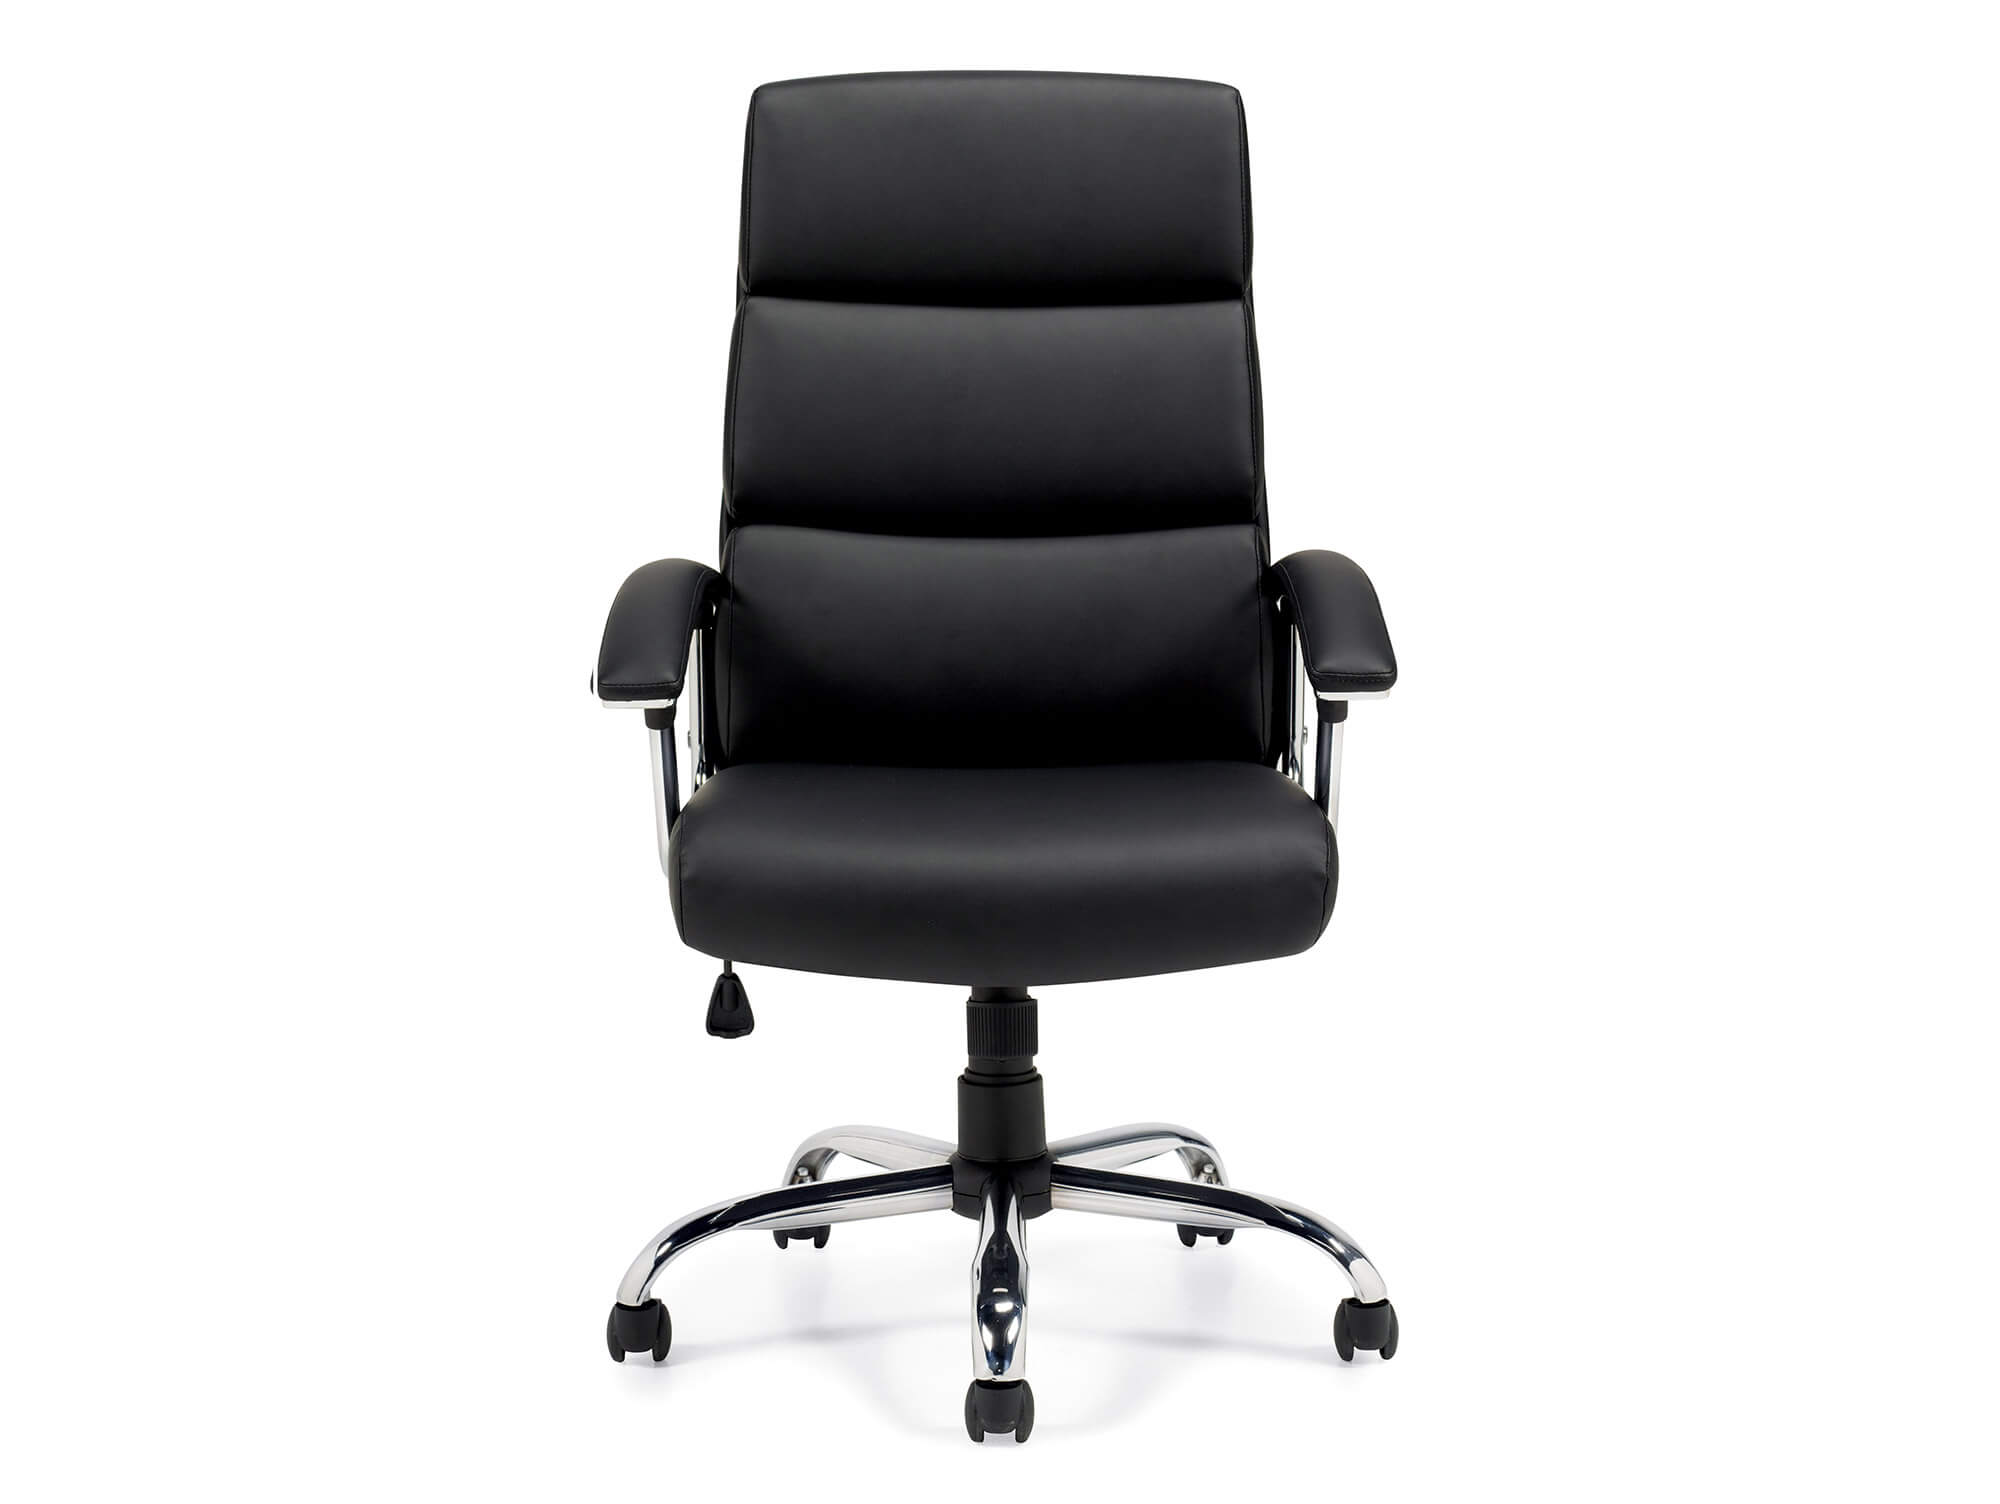 Conference style seating CUB 11858B GTO